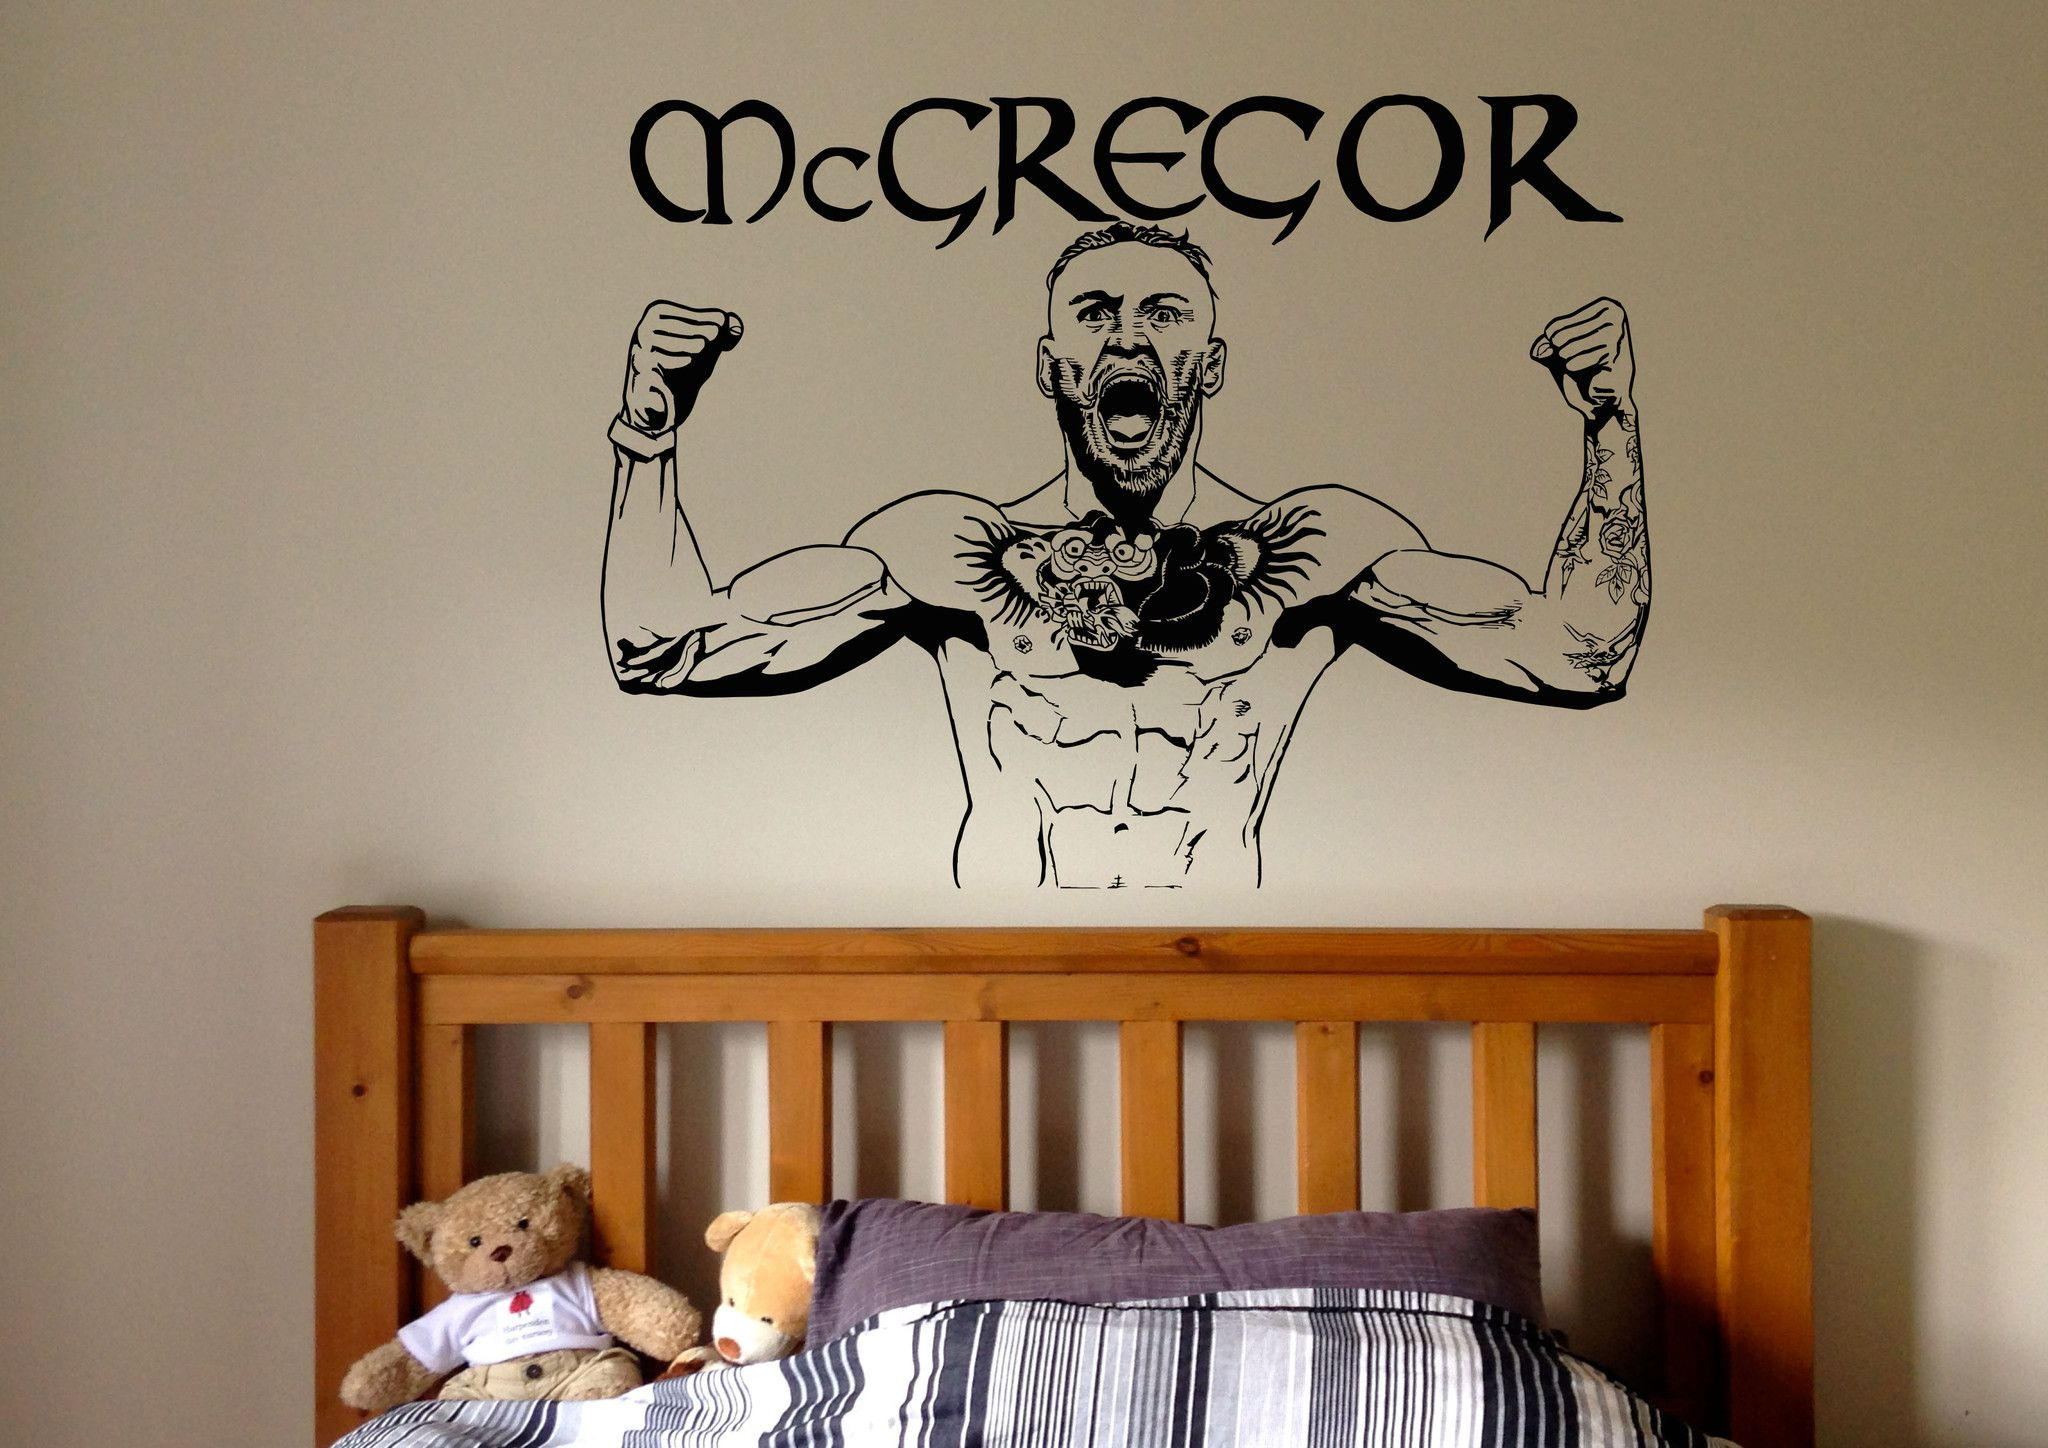 Conor Mcgregor Ufc Mma Fighter Wall Decal Iwallstickers Herois